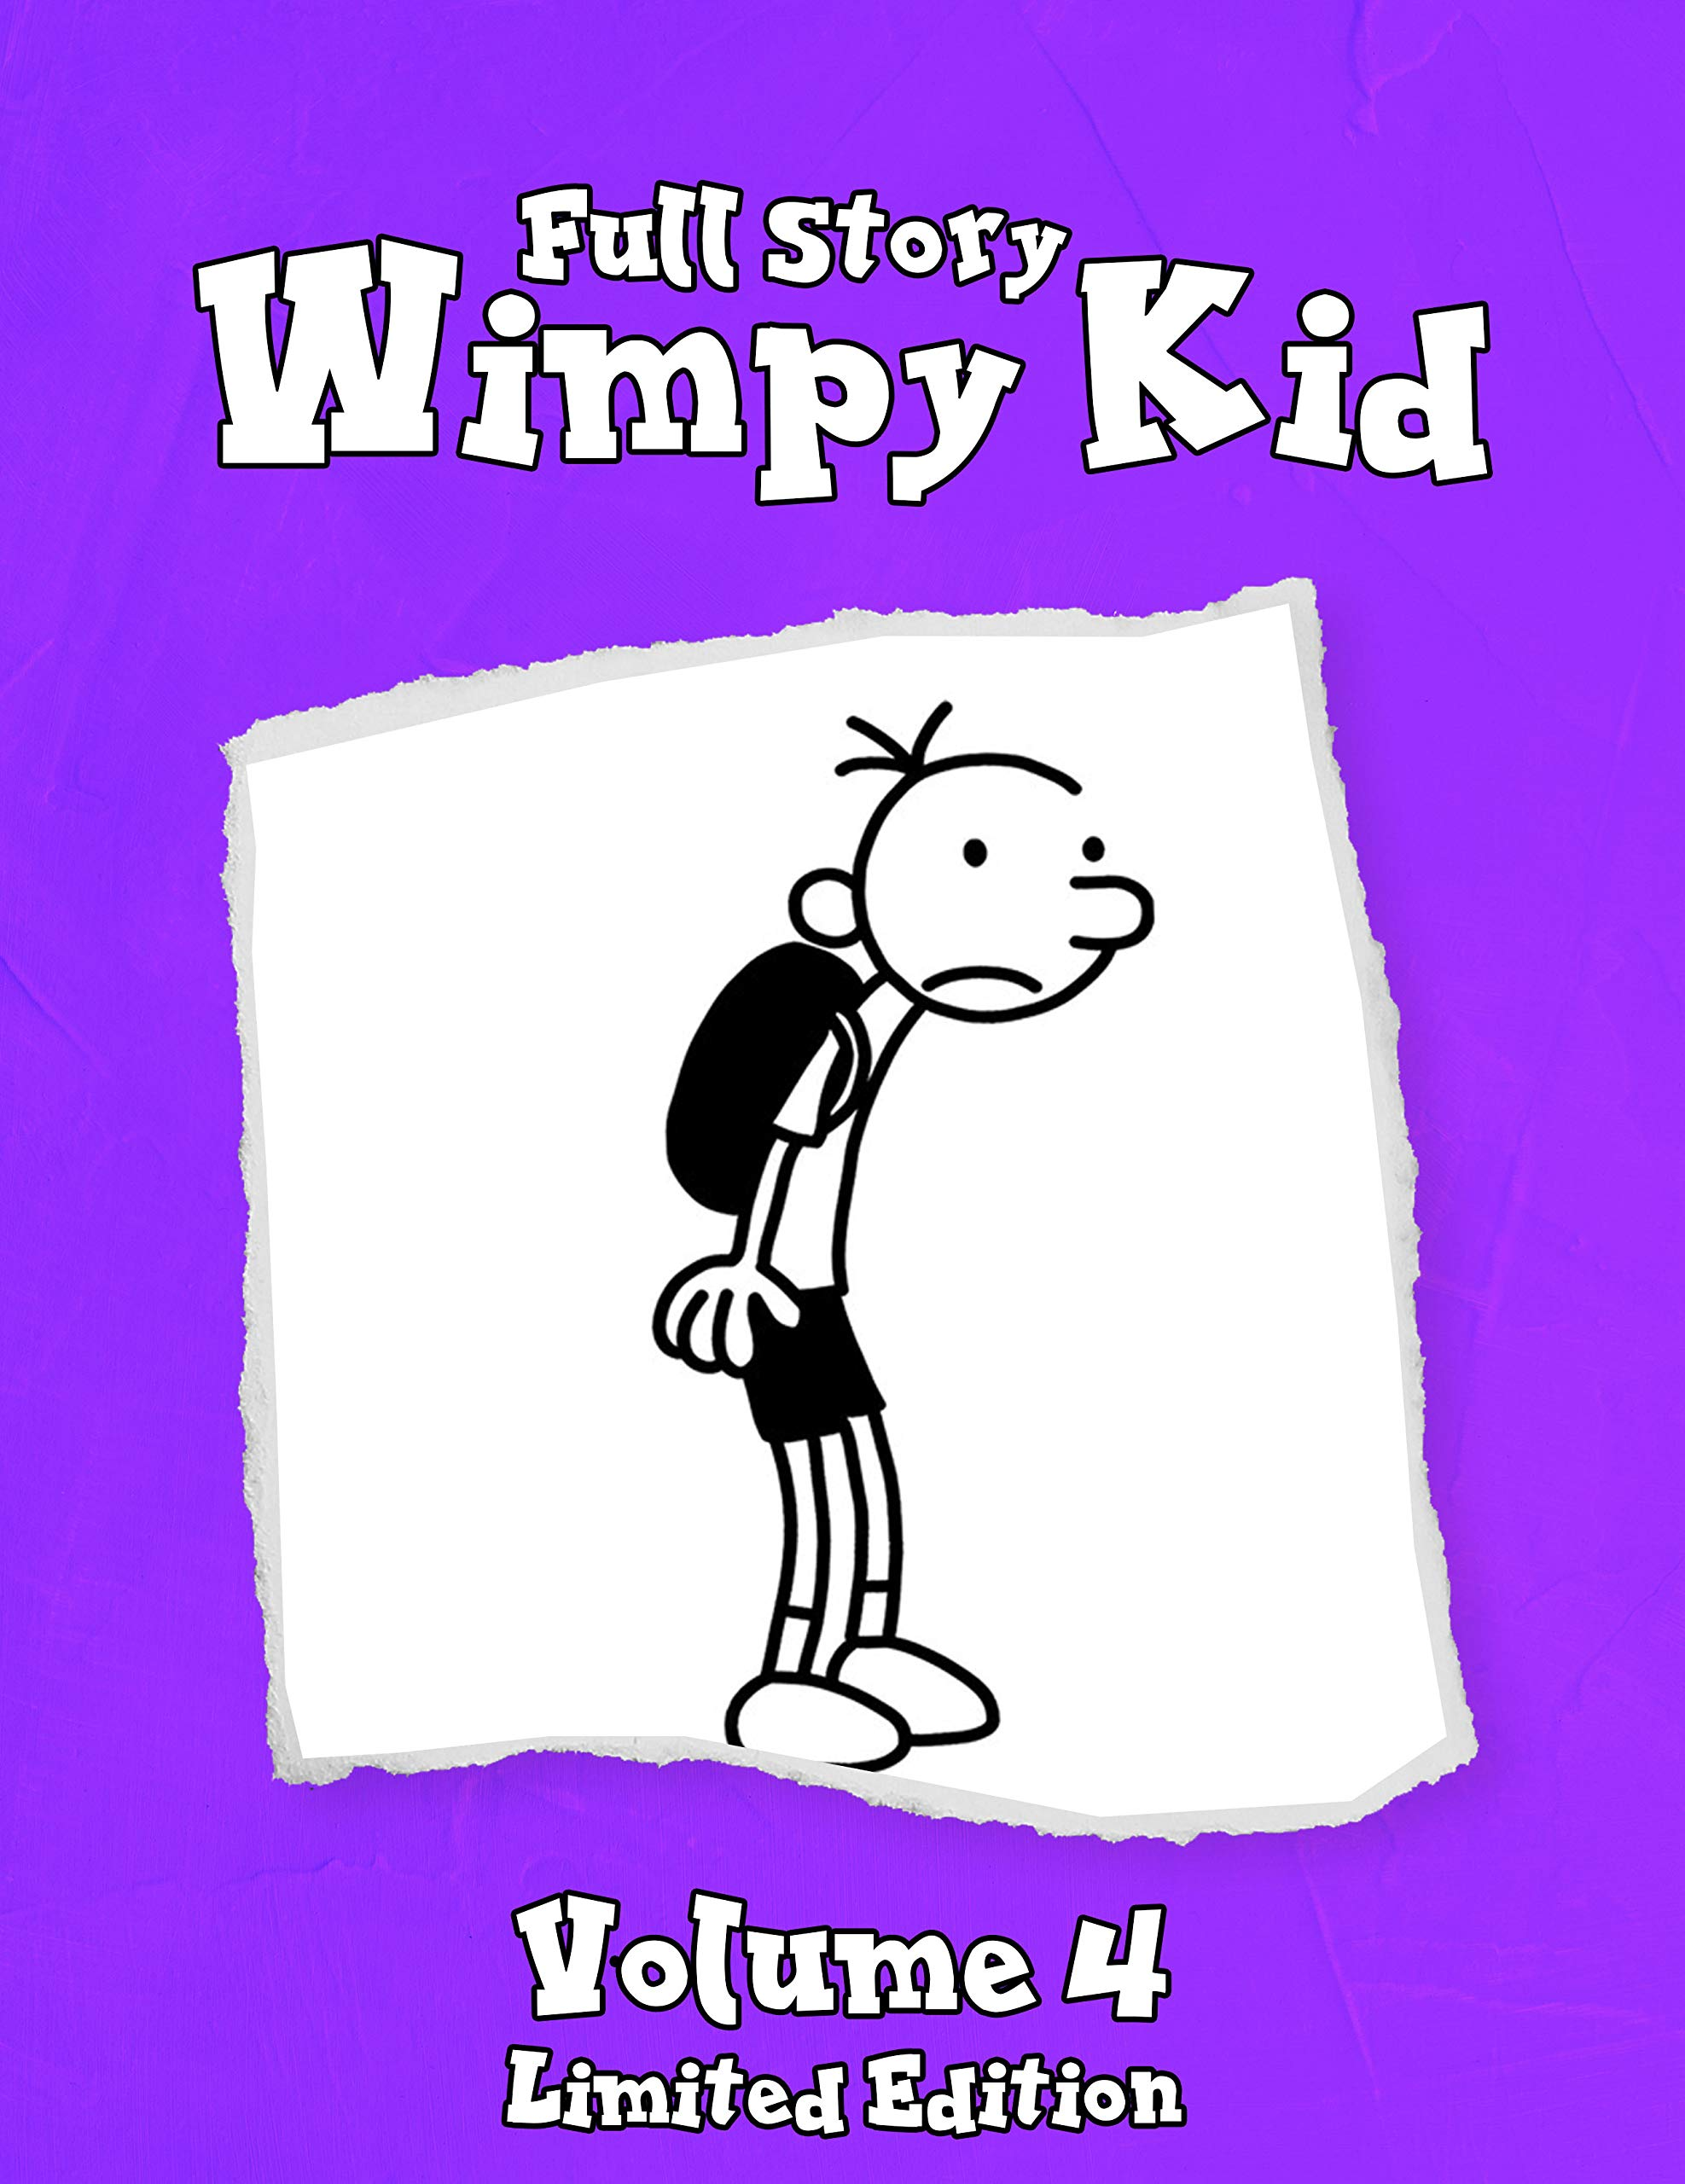 Full Story Wimpy Kid Funny Childrens Books Vol 4: Wimpy Kid Limited Edition - Diary Dog days